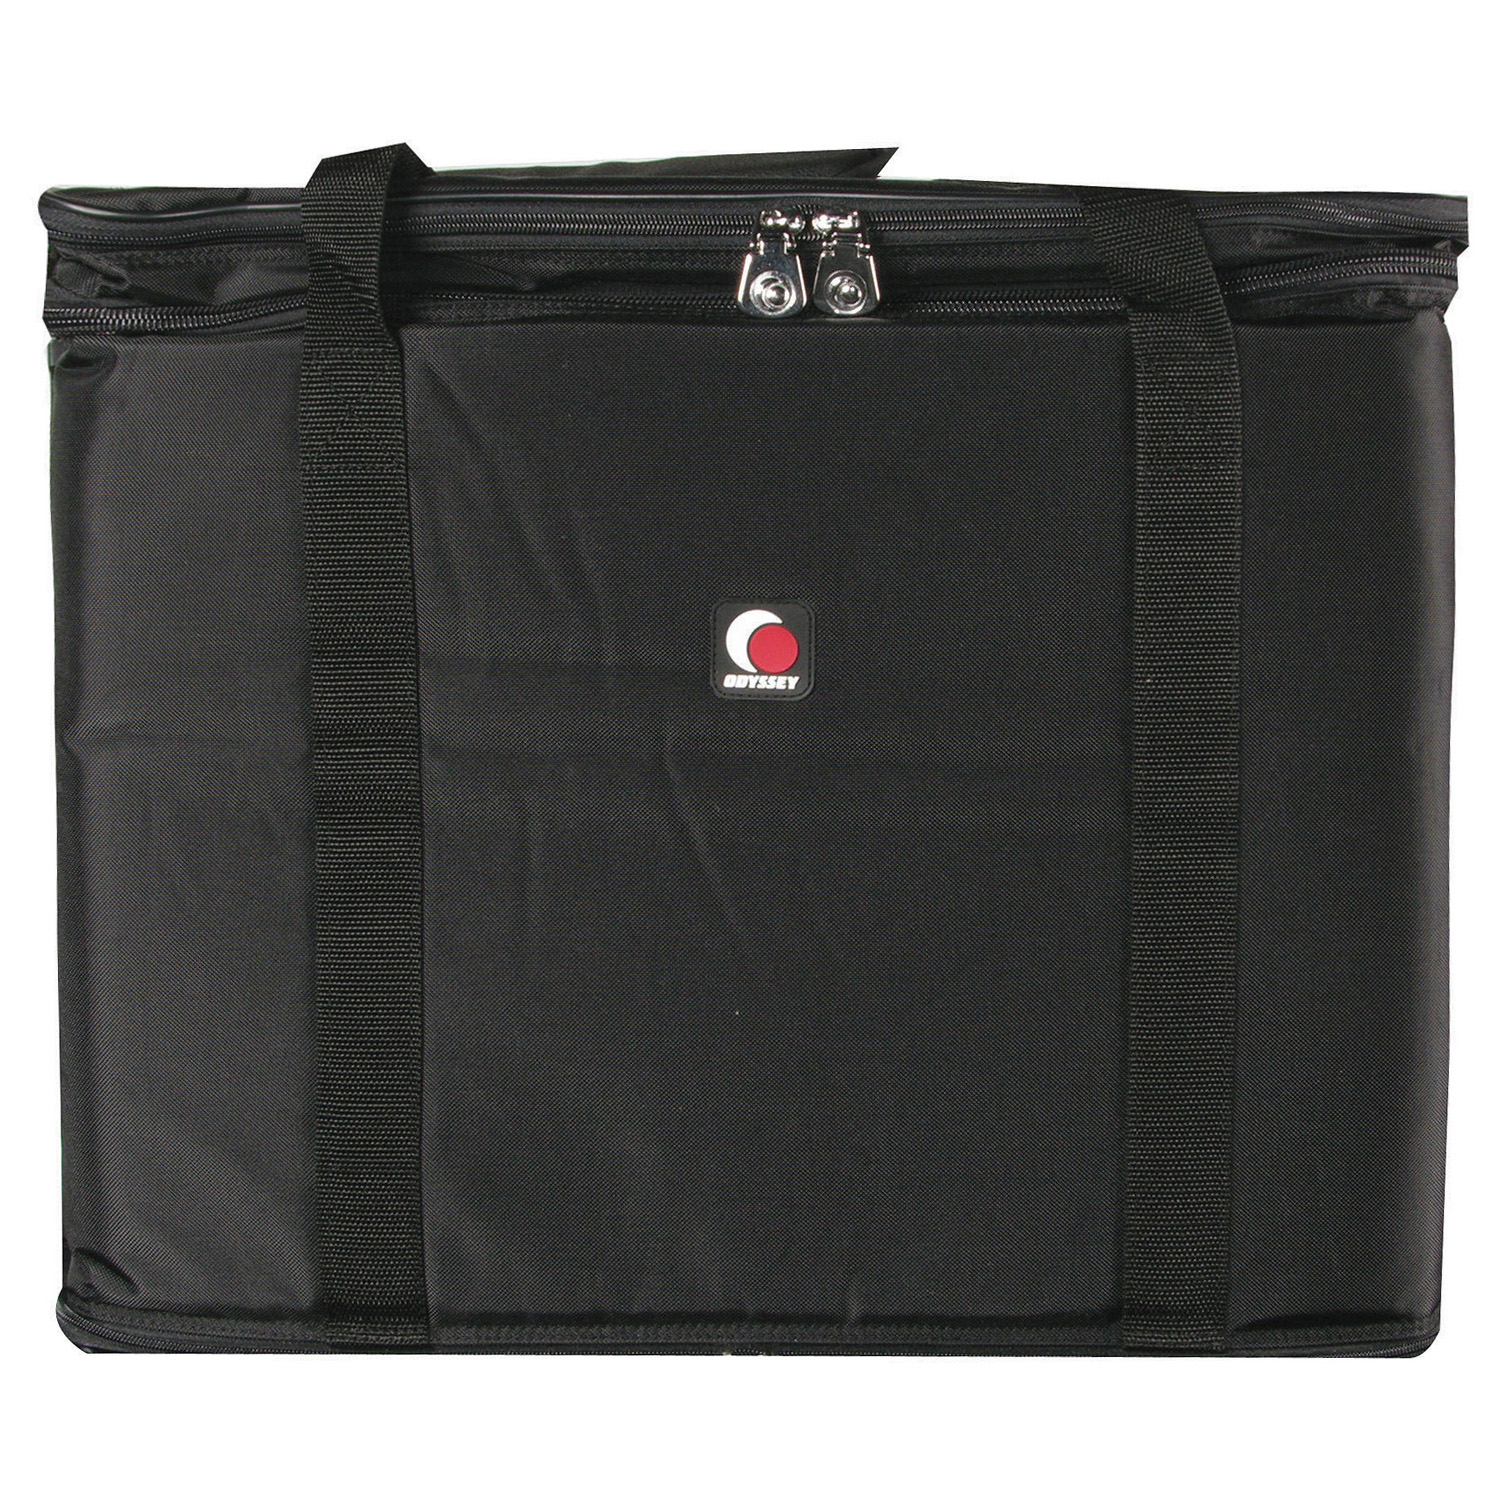 "4U Rack Bag with 16"" Interior Depth"